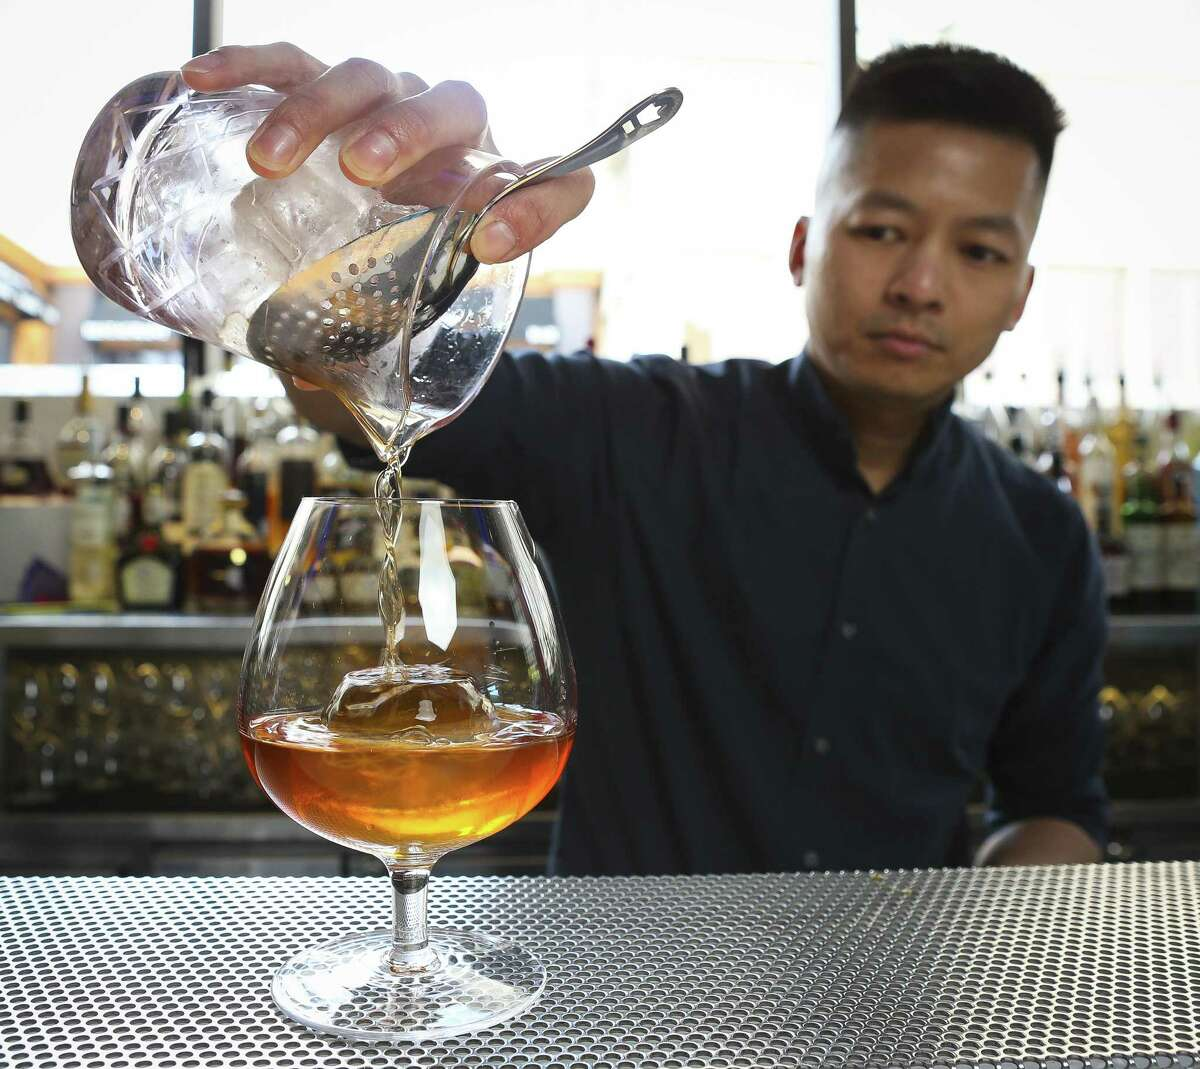 Gee Lee, the lead bartender at Yauatcha at The Galleria, makes one of the restaurants signature cocktails, the Elemental Fashion, behind the bar.